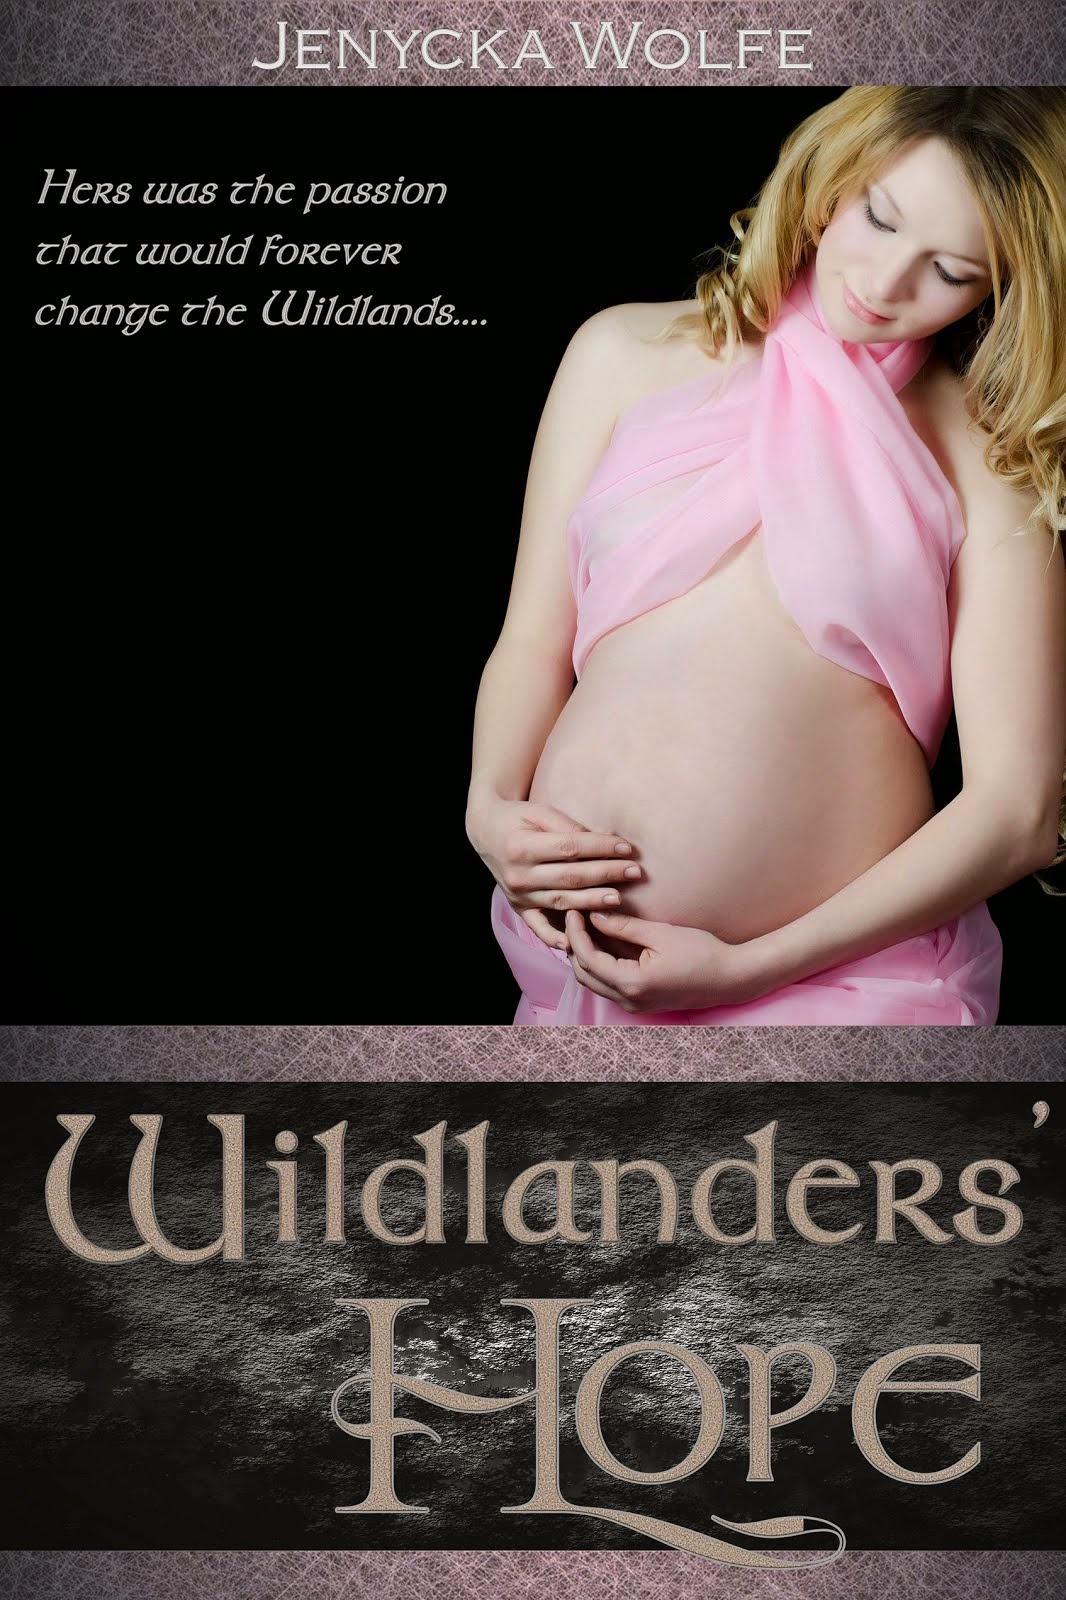 Wildlanders' Hope: Wildlands Origins, Book 1